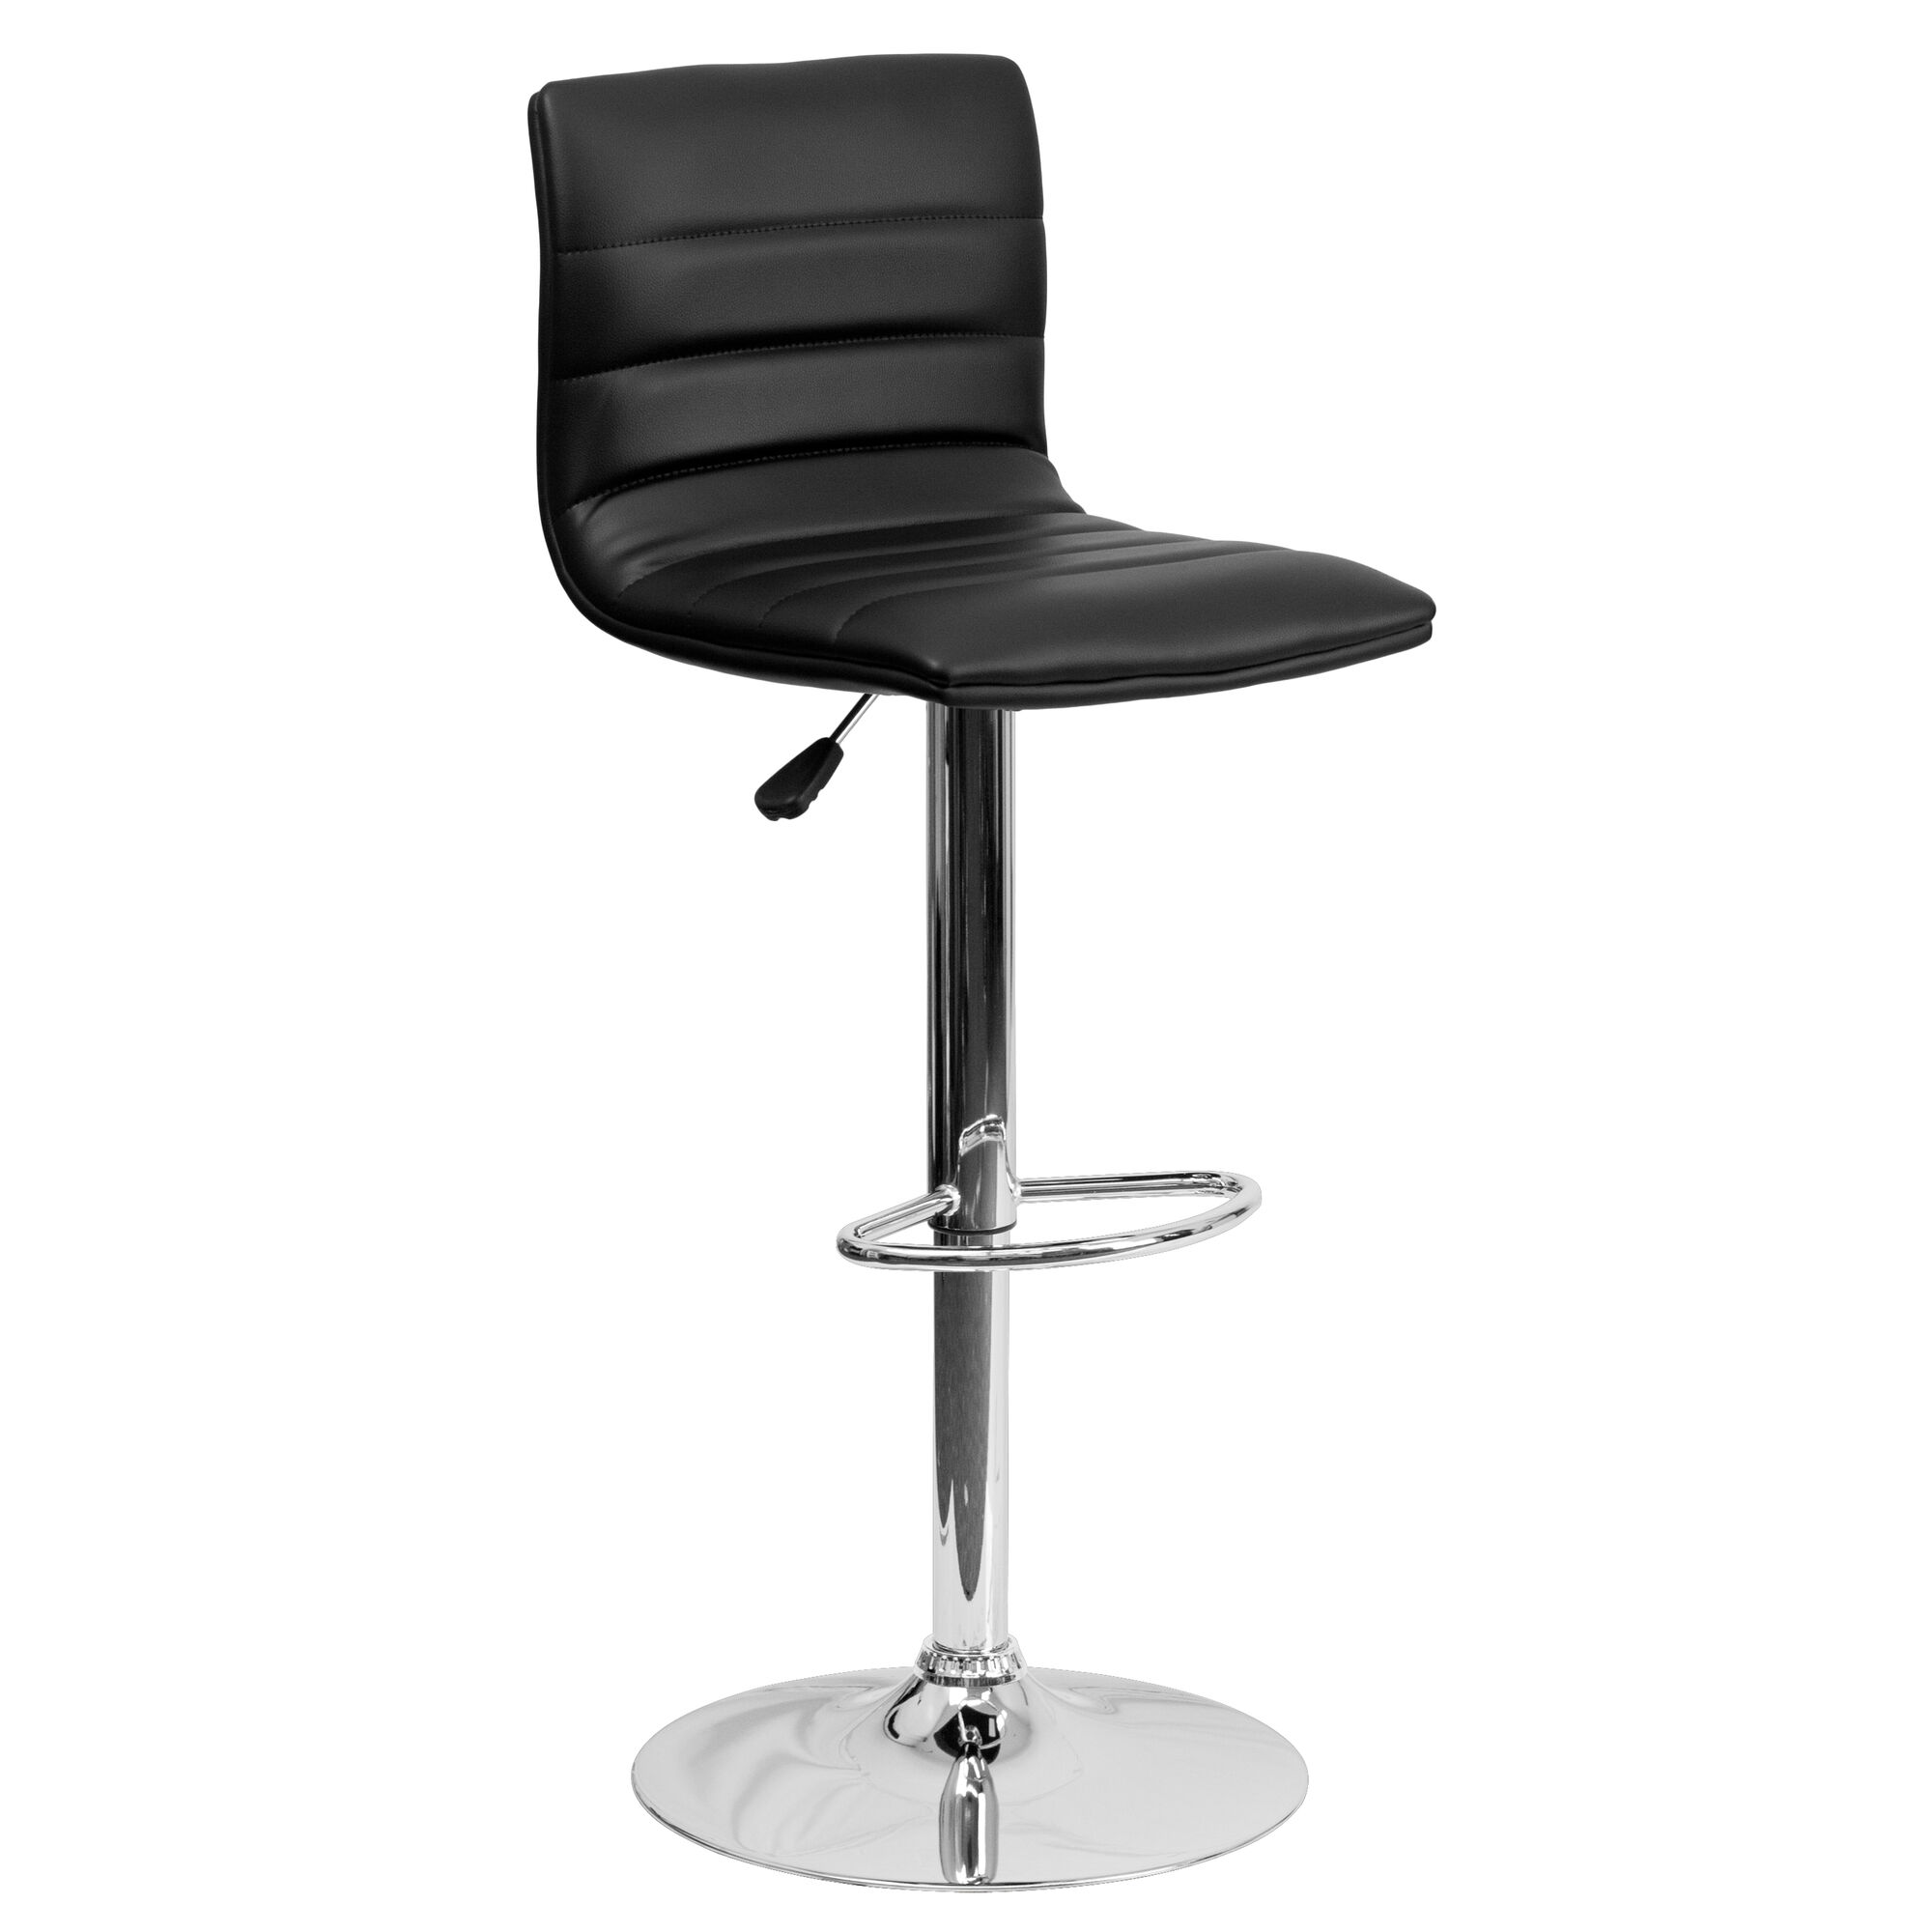 Fabulous Contemporary Black Vinyl Adjustable Height Barstool With Horizontal Stitch Back And Chrome Base Ibusinesslaw Wood Chair Design Ideas Ibusinesslaworg